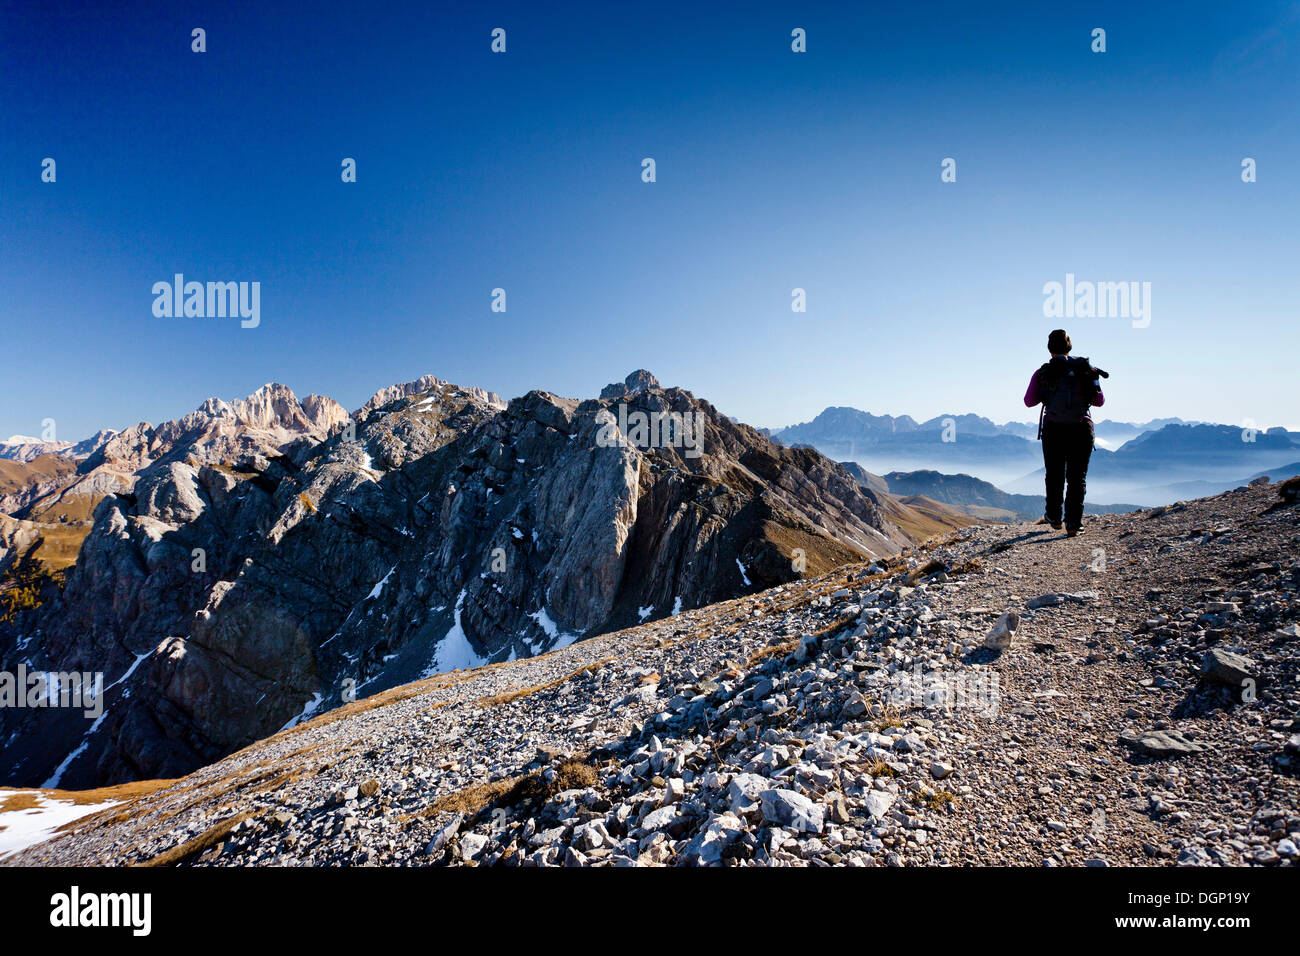 Hiker during the ascent to the Bepi-Zac fixed rope route in the San Pellegrino Valley above the San Pellegrino Pass, Stock Photo